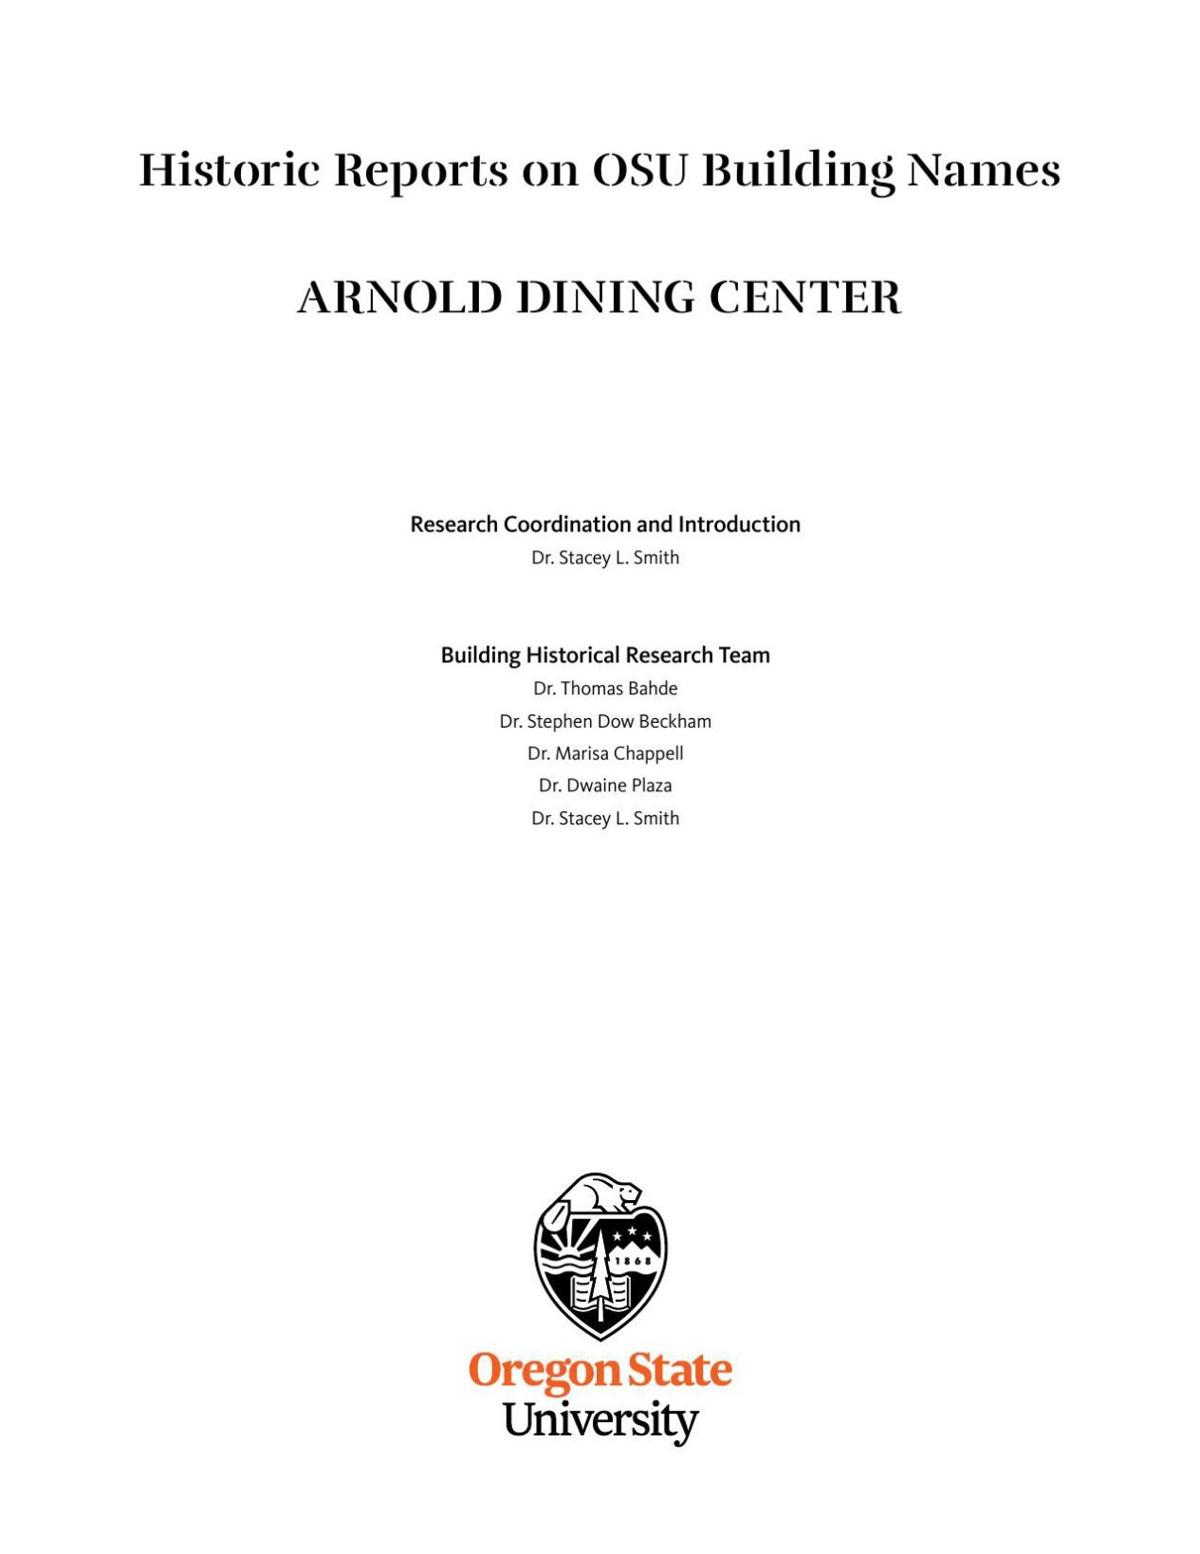 Arnold Dining Hall report